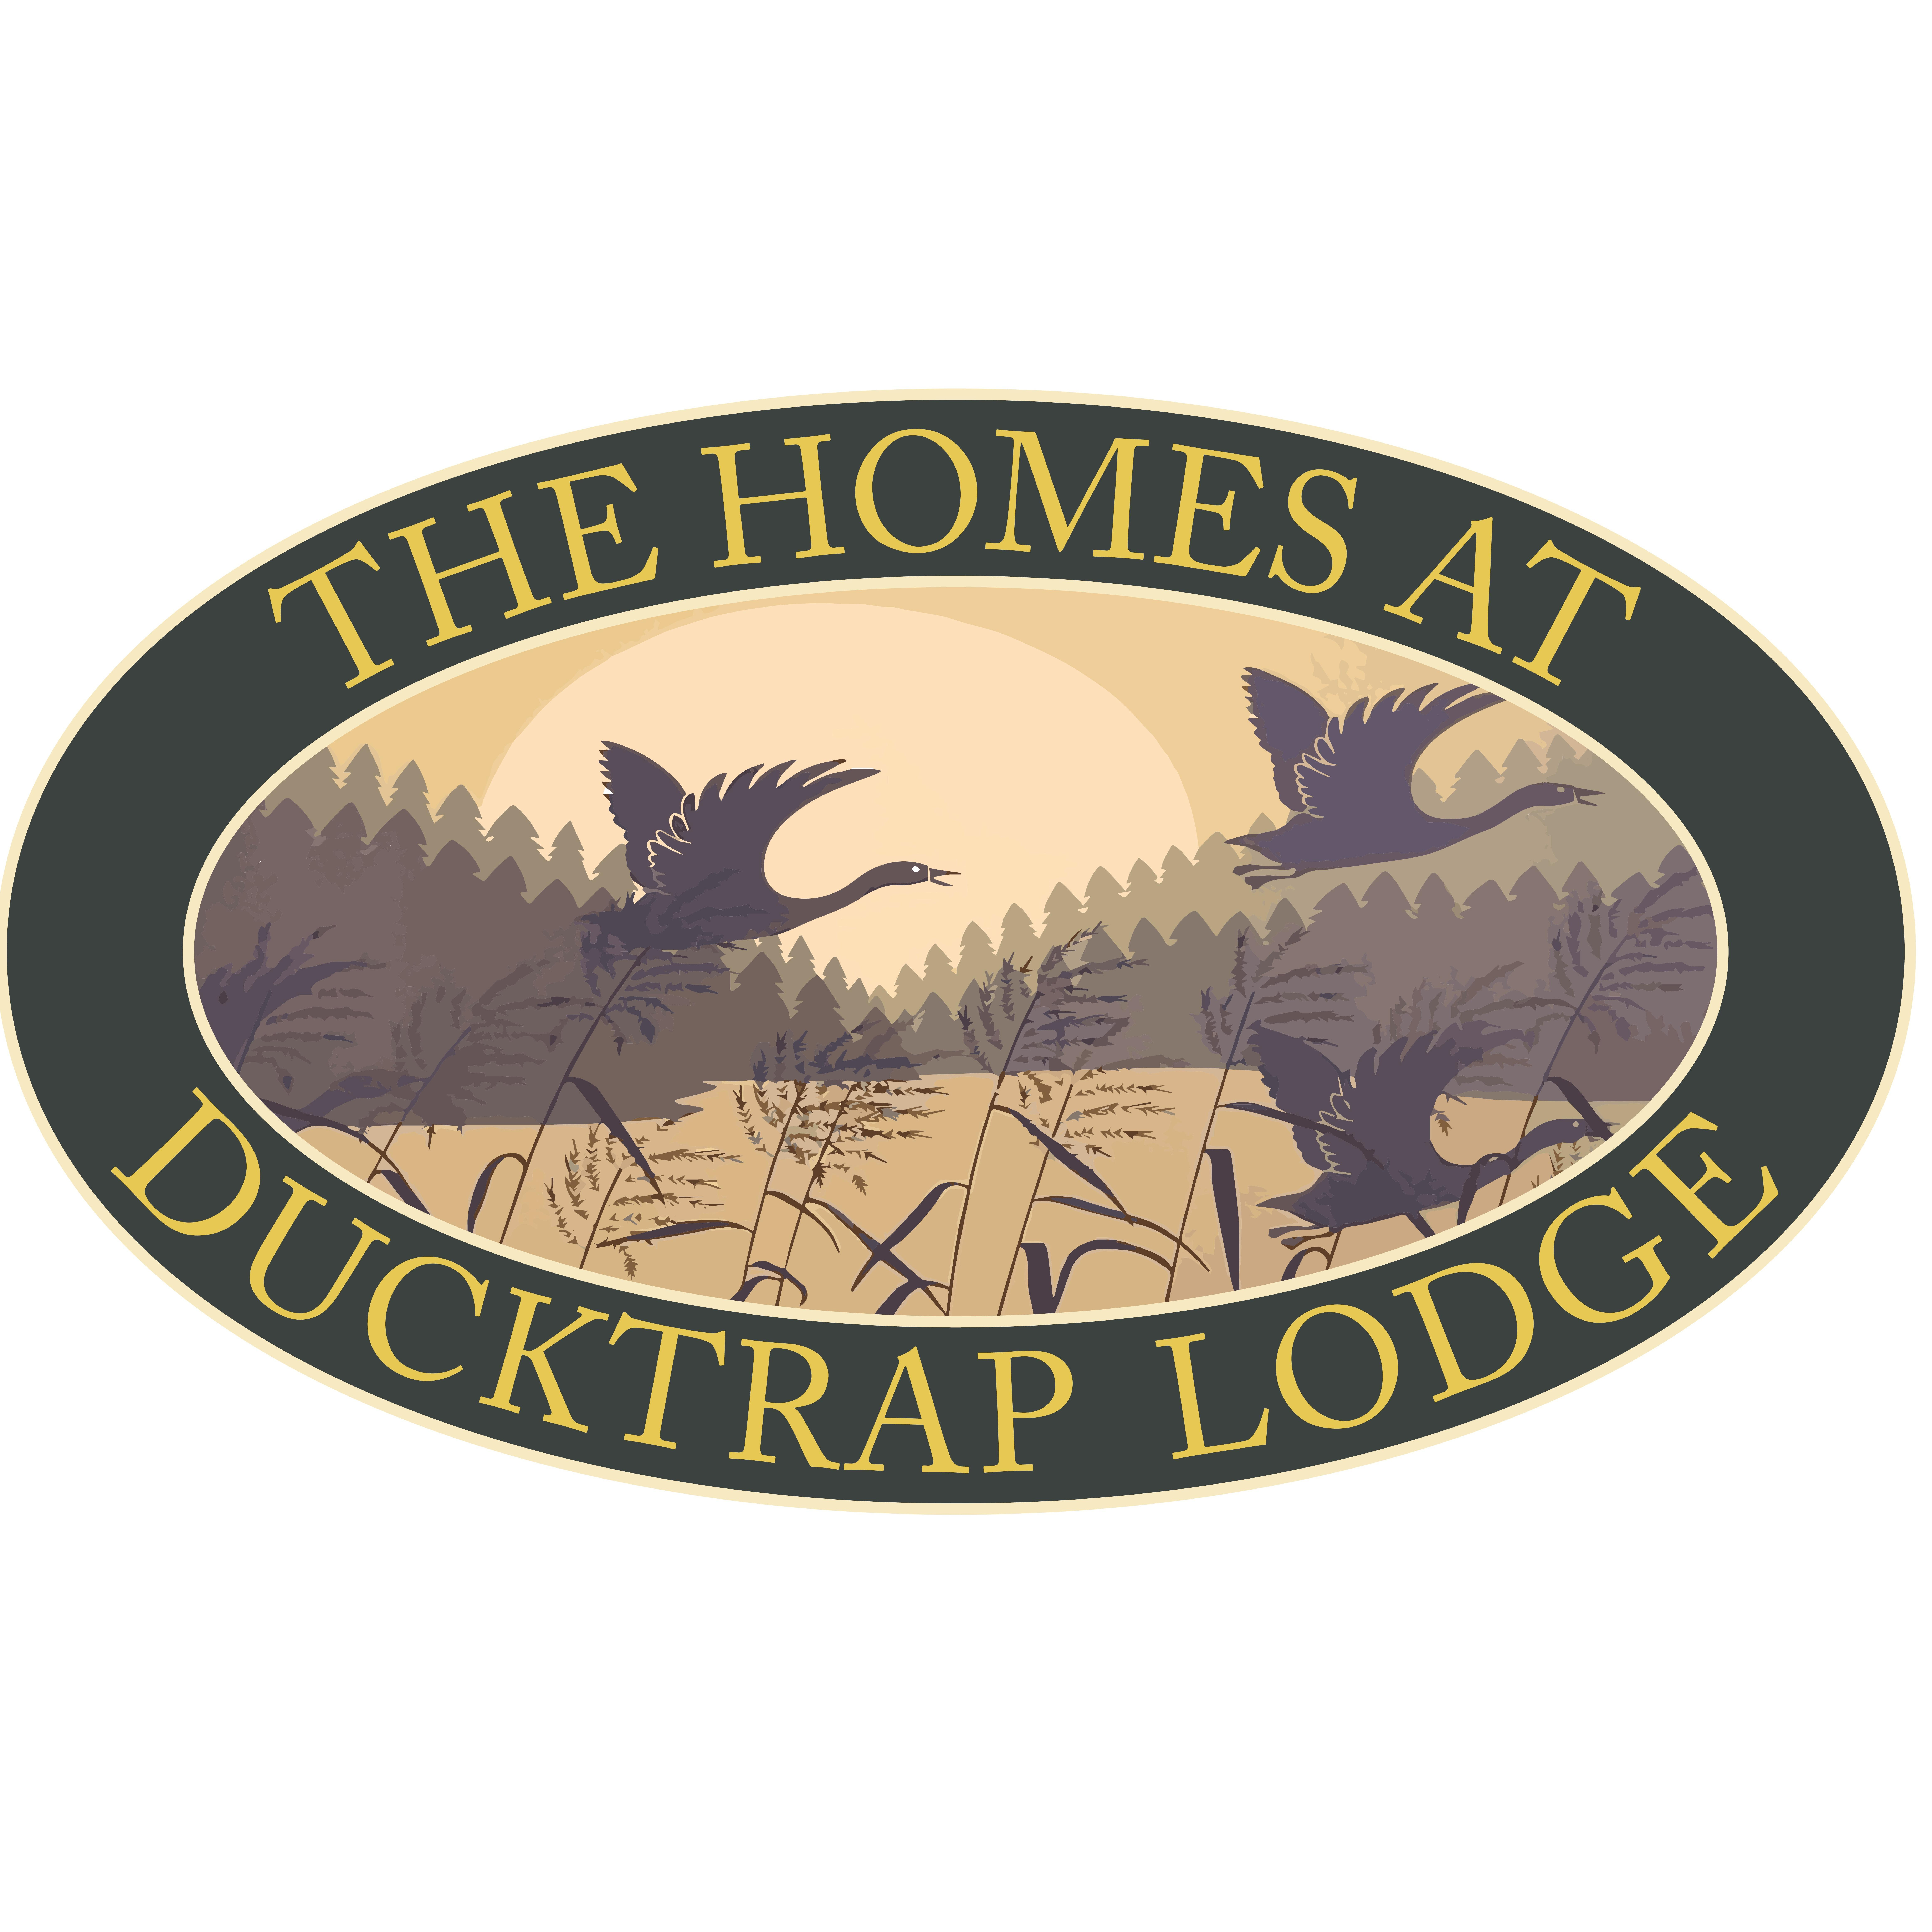 Ducktrap Lodge and Retreat